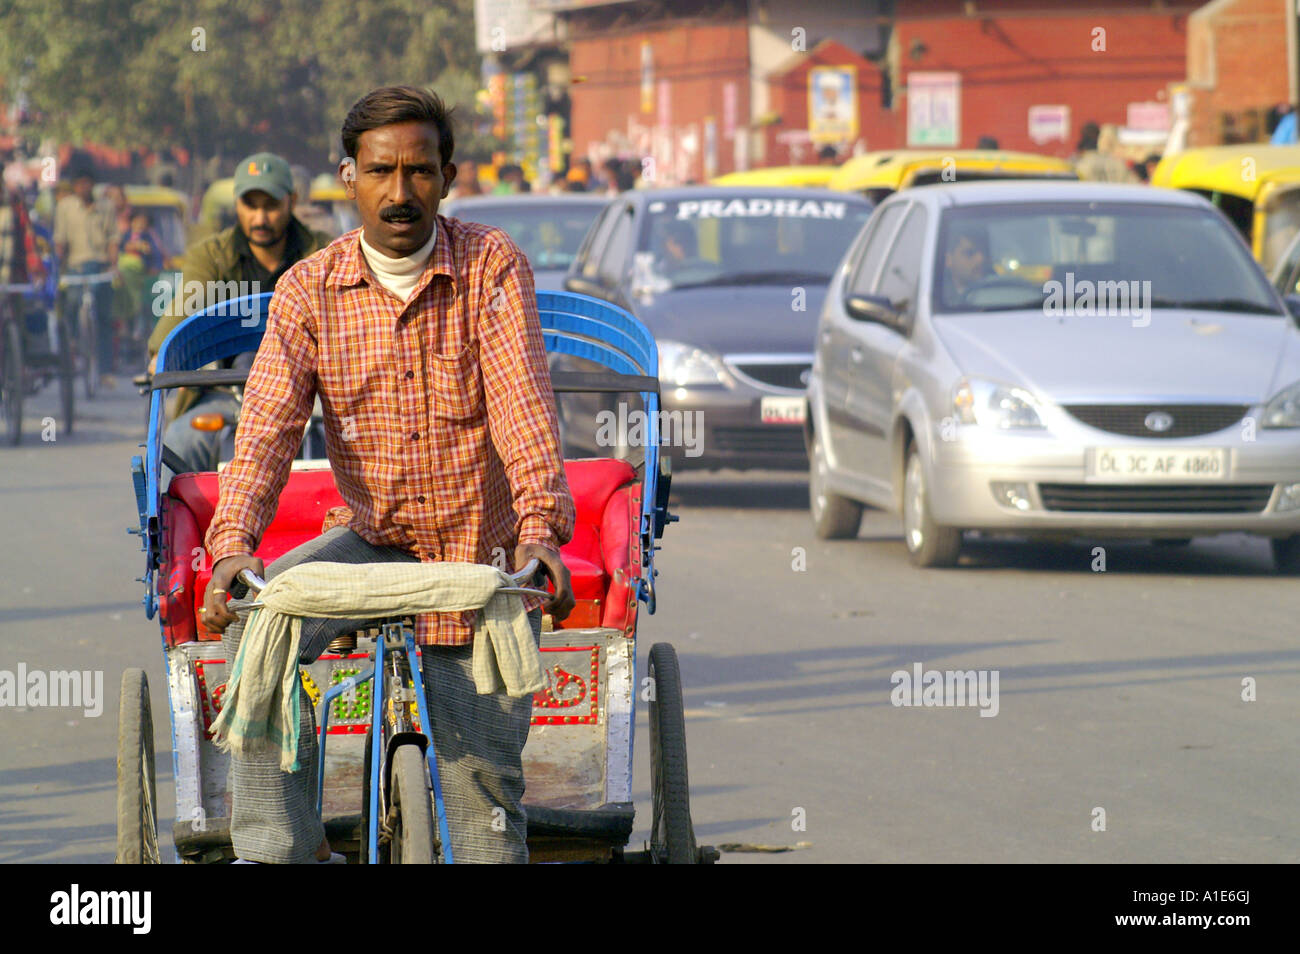 Rickshaw bicycle and modern cars - changing India trasport, street of New Delhi Stock Photo